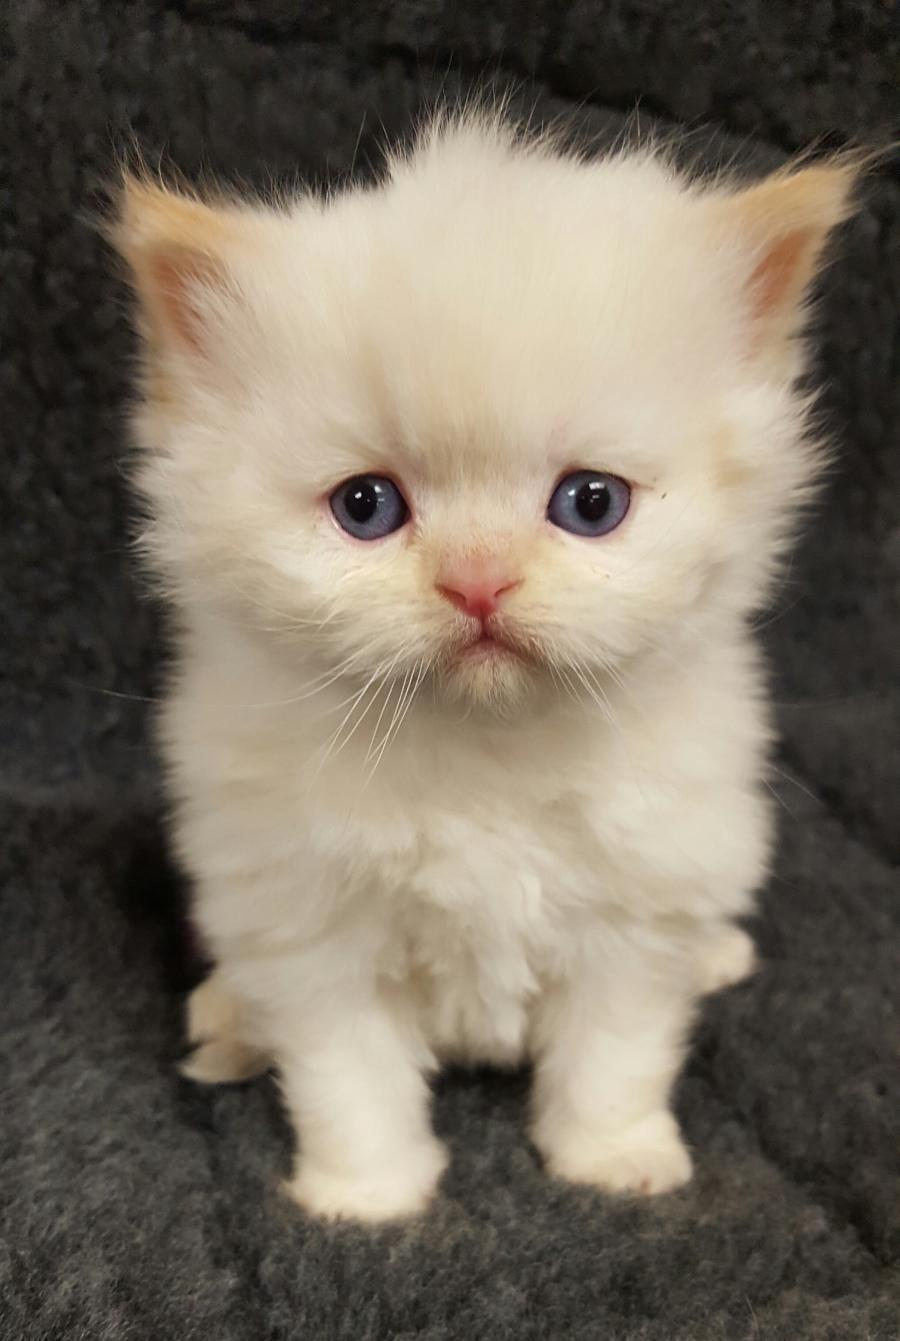 <small><del>Himalayan Kitten</del></small><br />Happy Himalayan Kitten